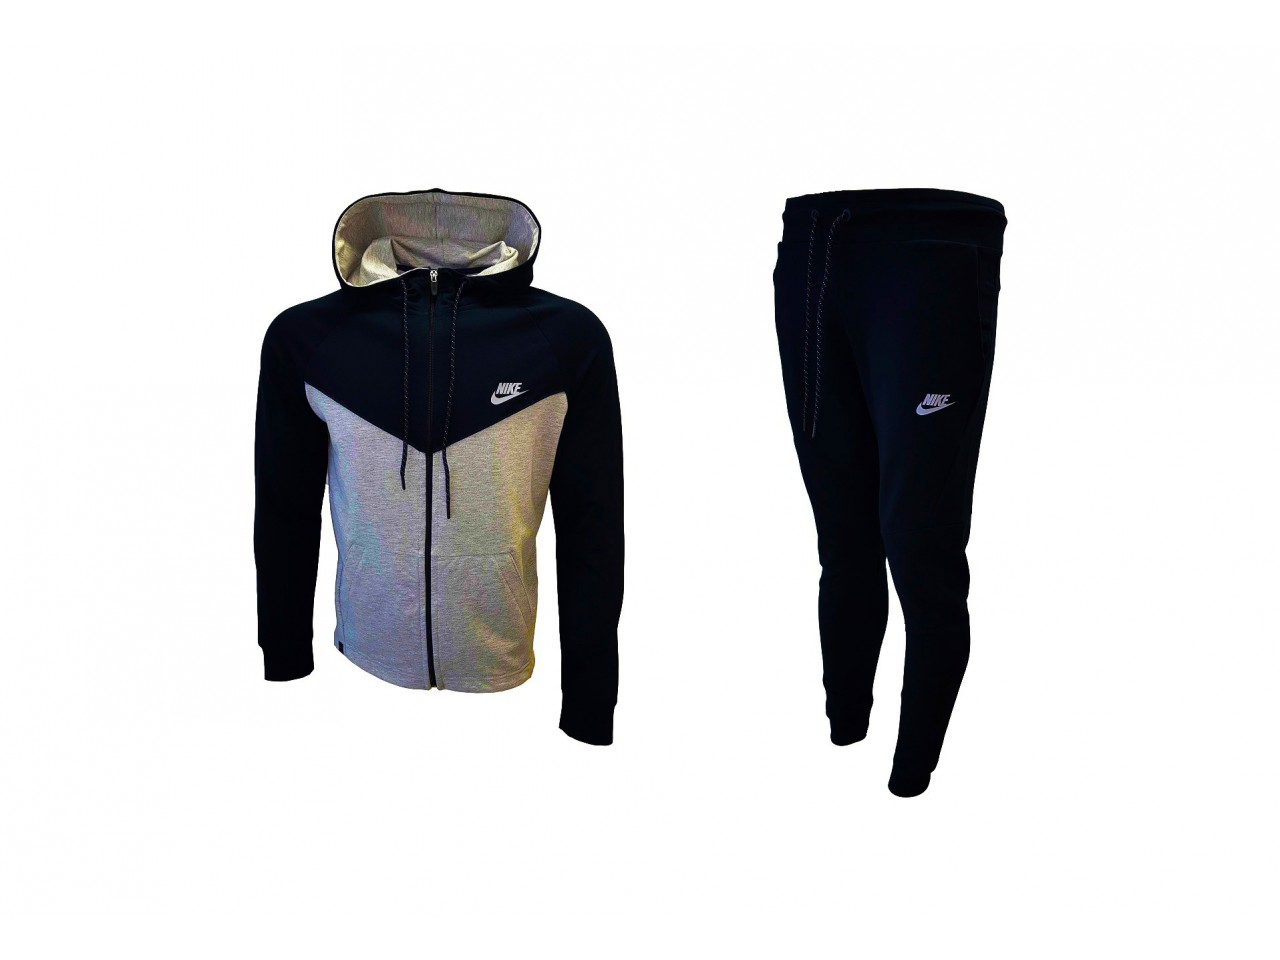 Nike Tracksuit Top Model Black Light Grey